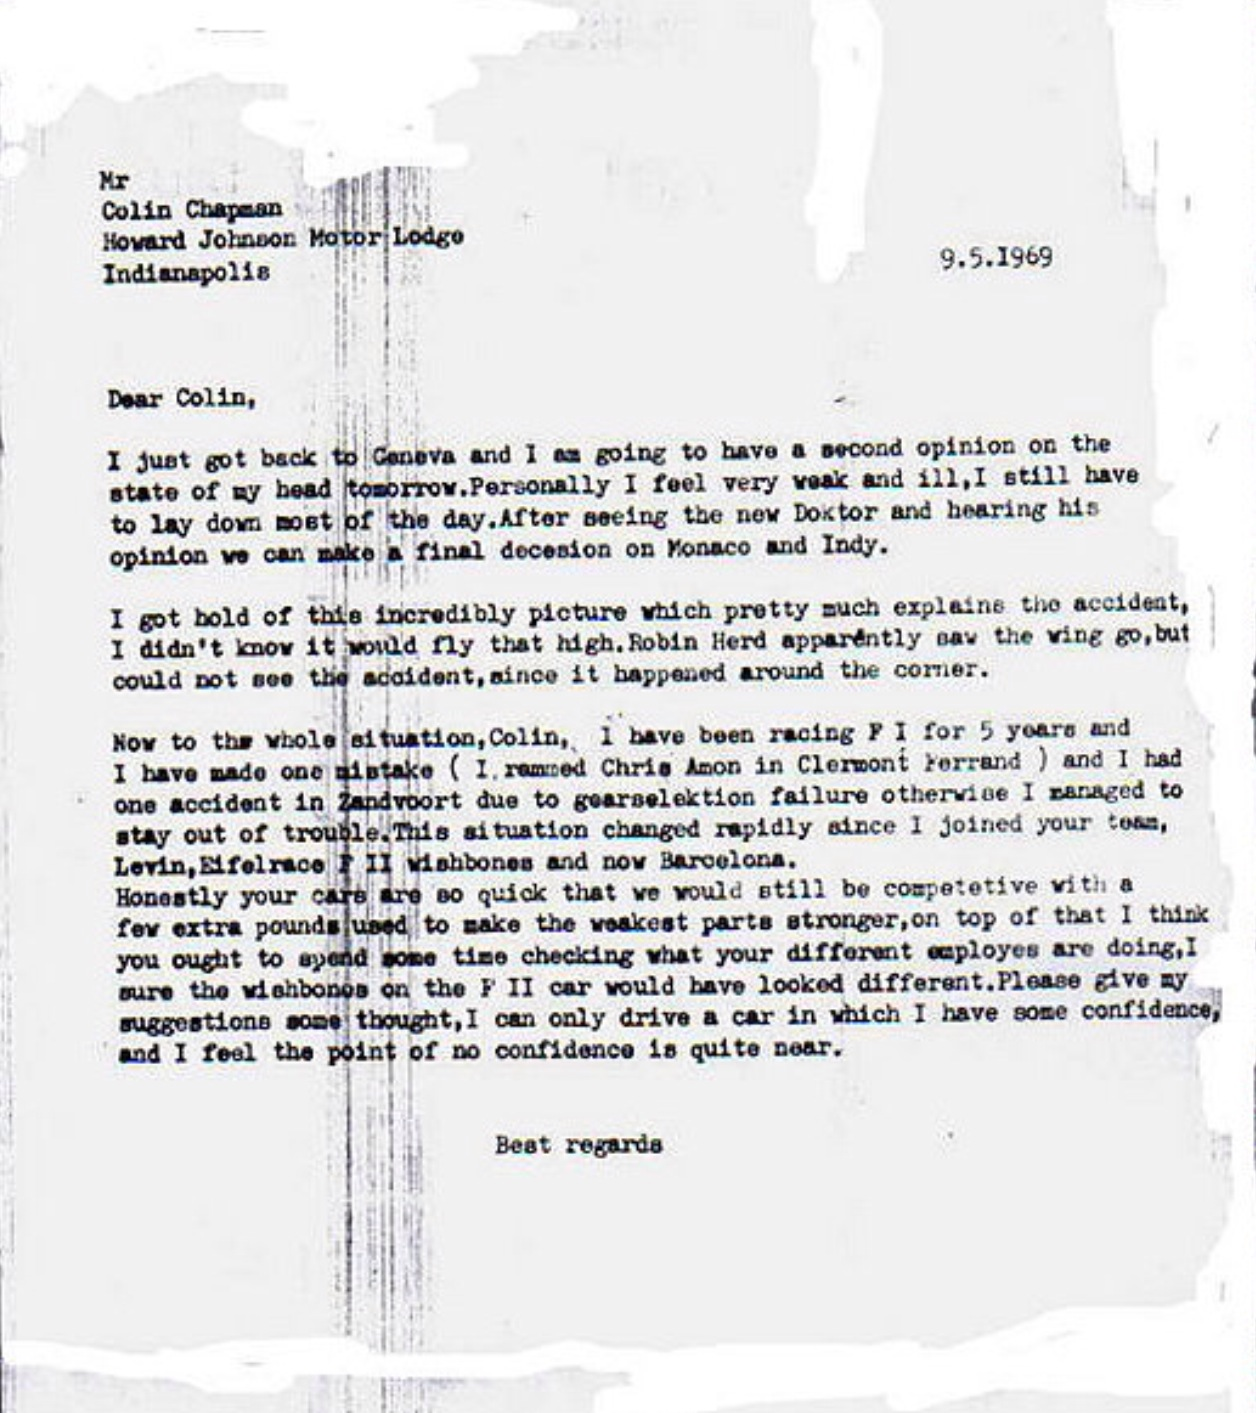 1969 Letter Rindt to Colin.jpg